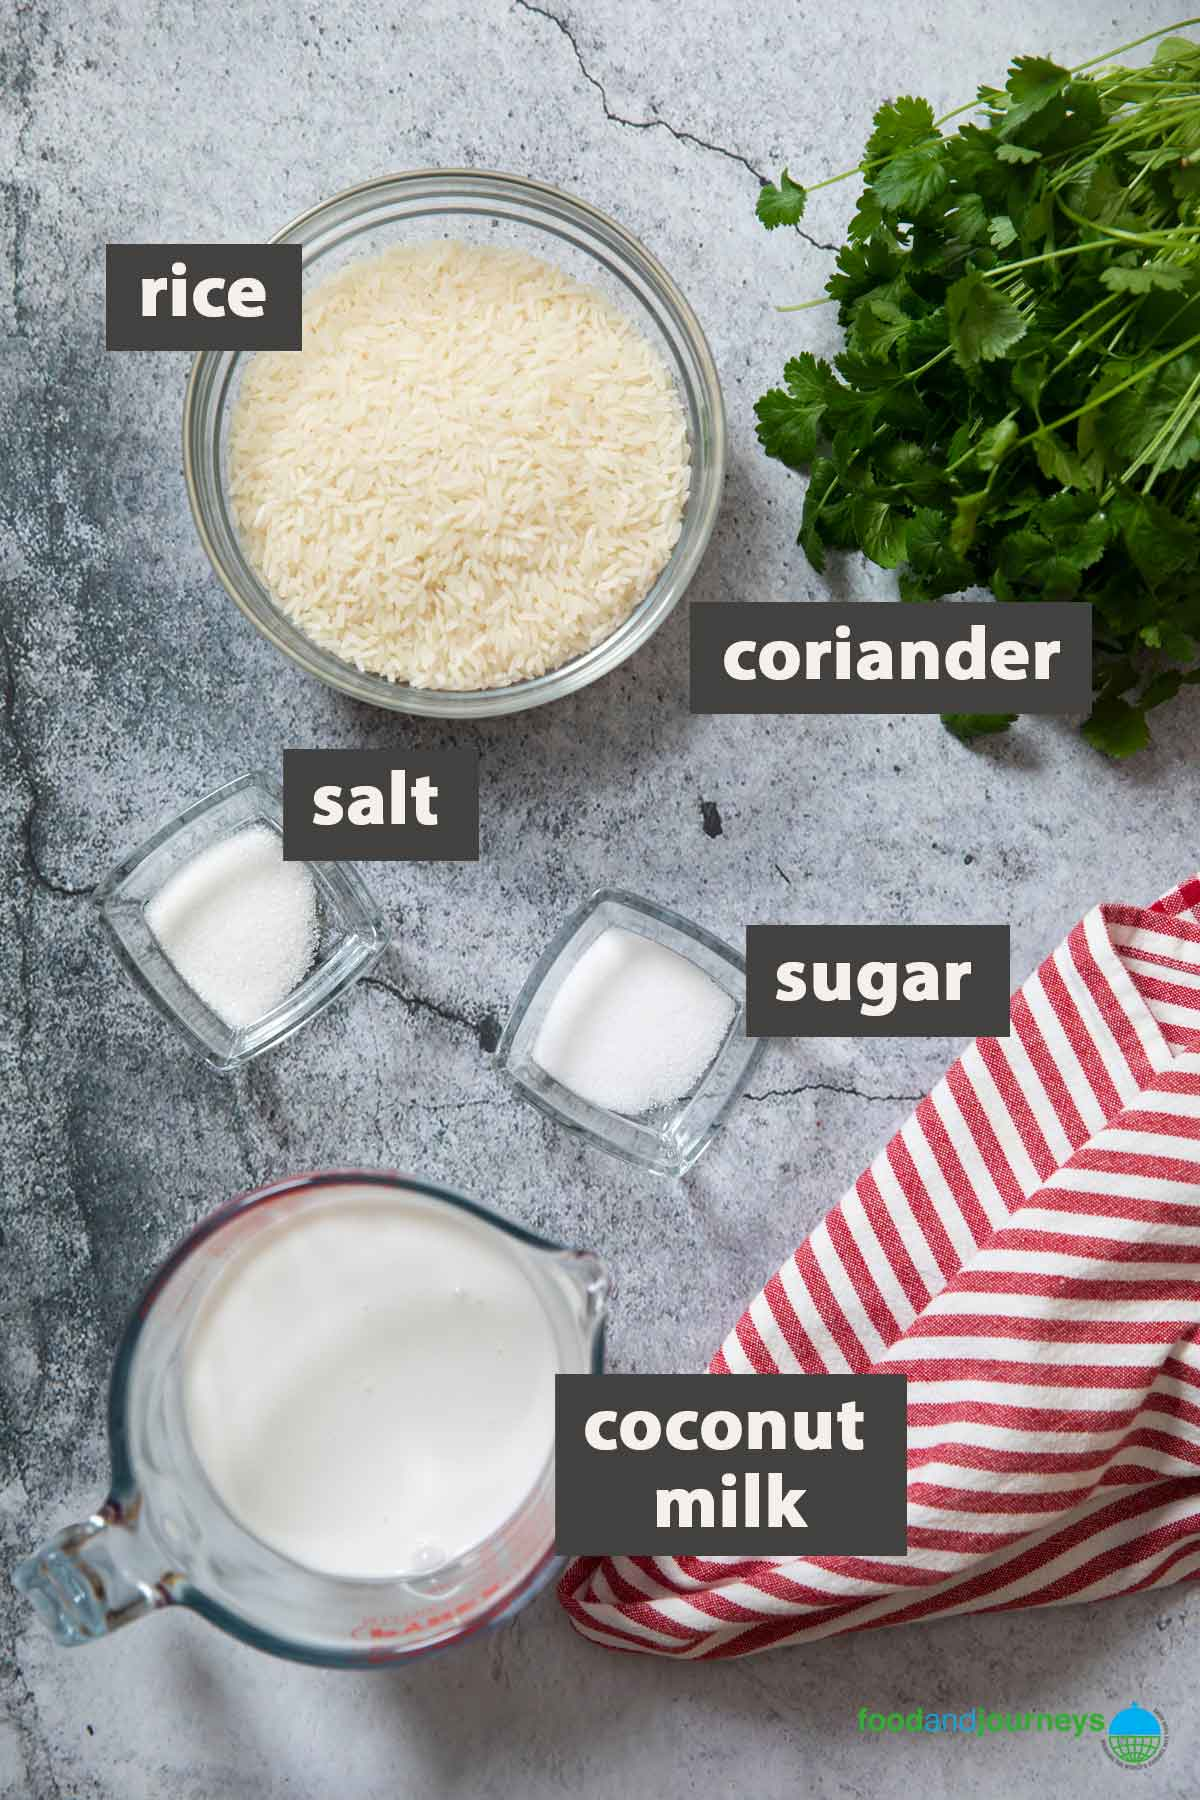 An image showing all the ingredients you need to prepare fluffy coconut rice at home.